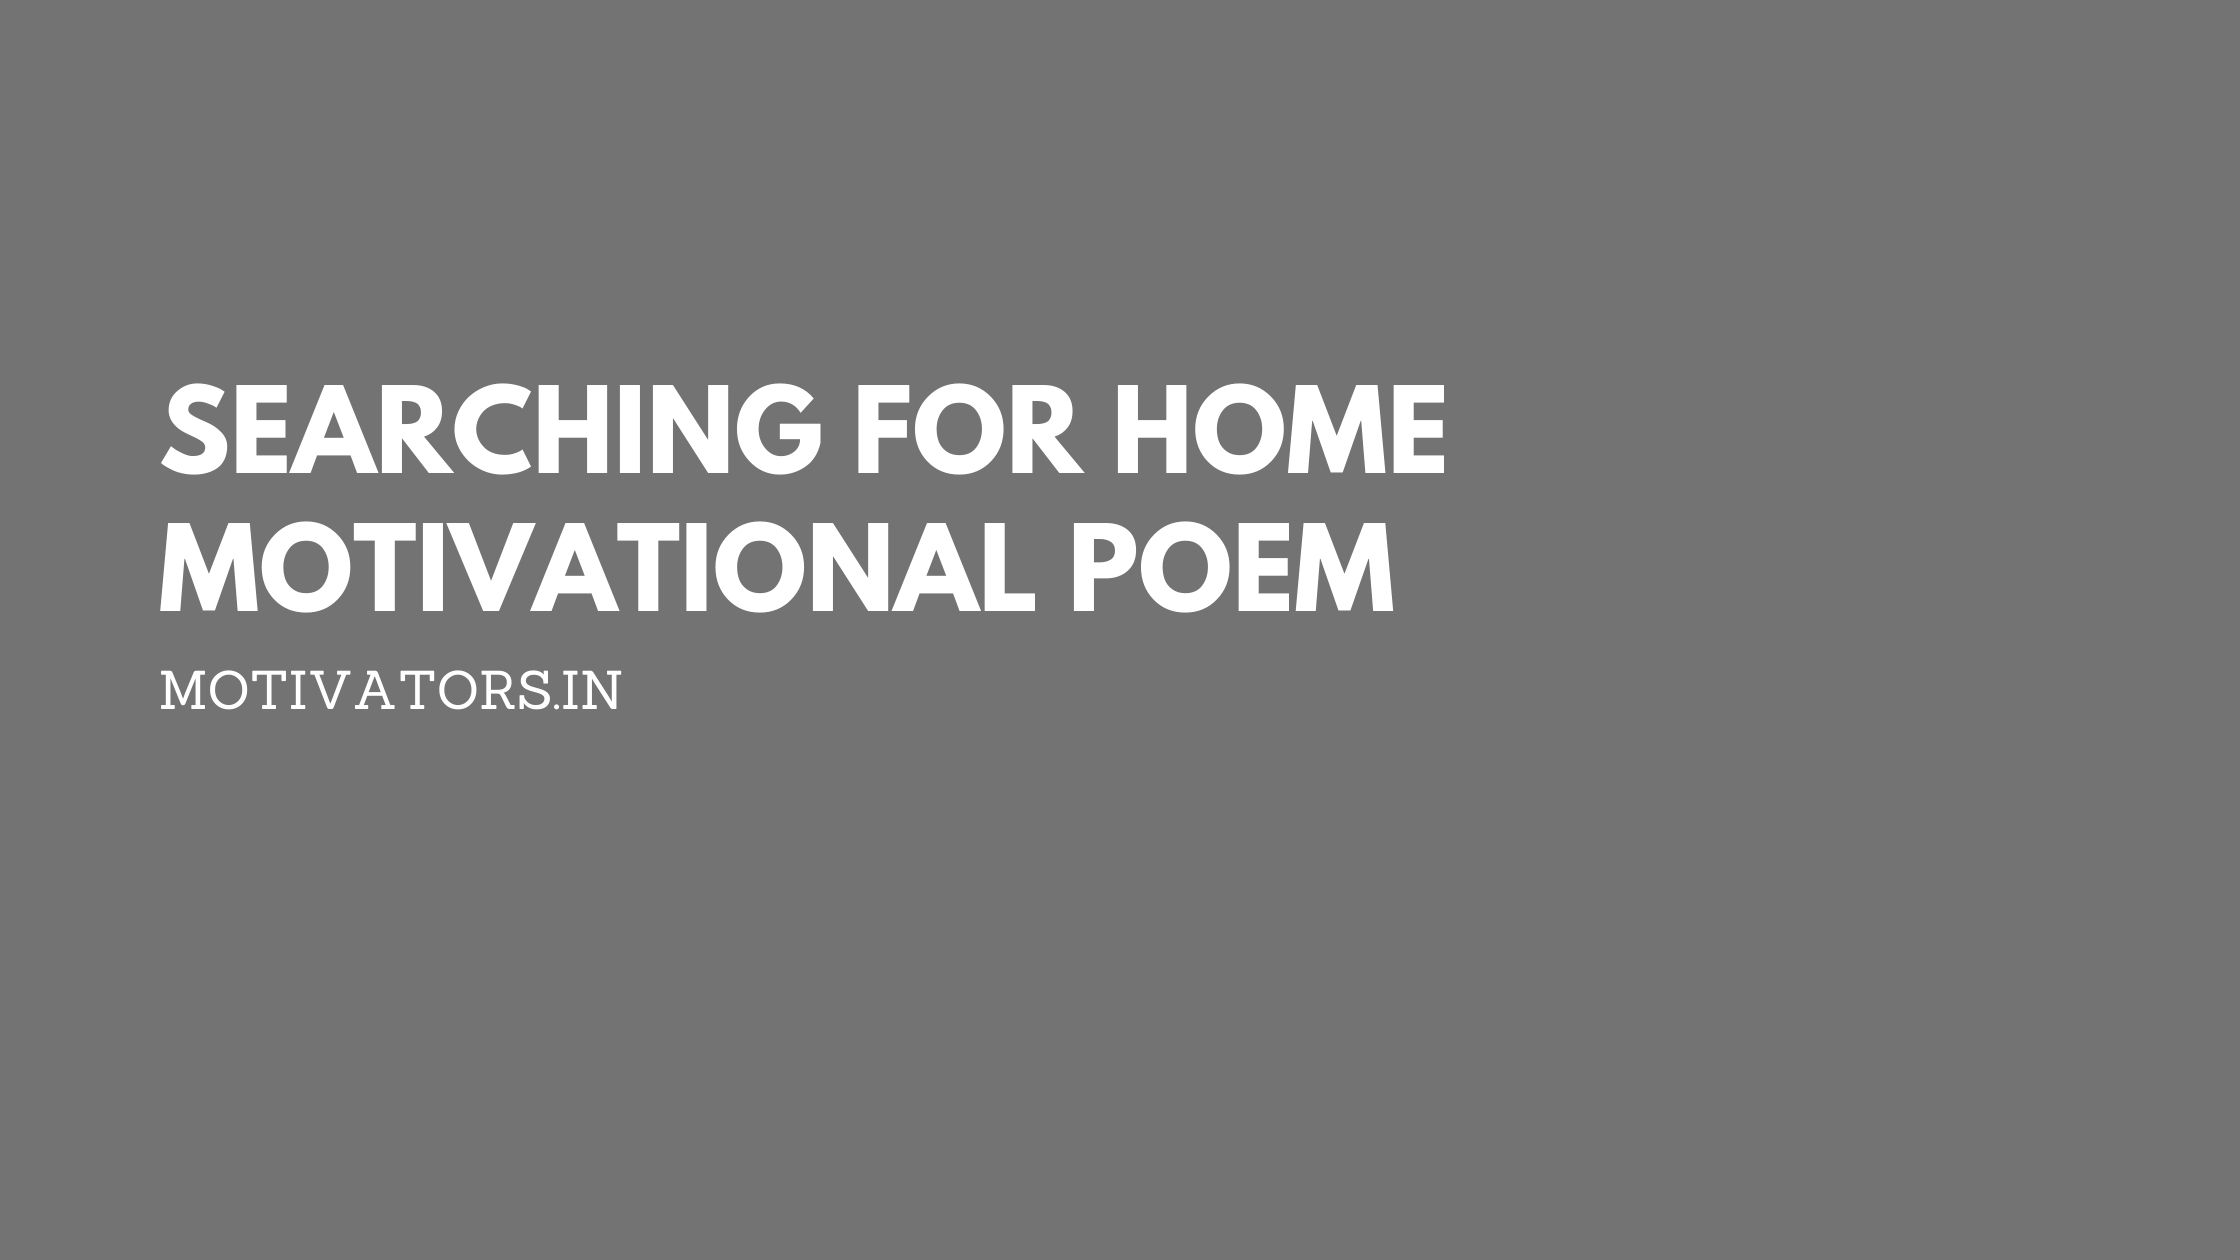 Searching For Home Motivational Poem